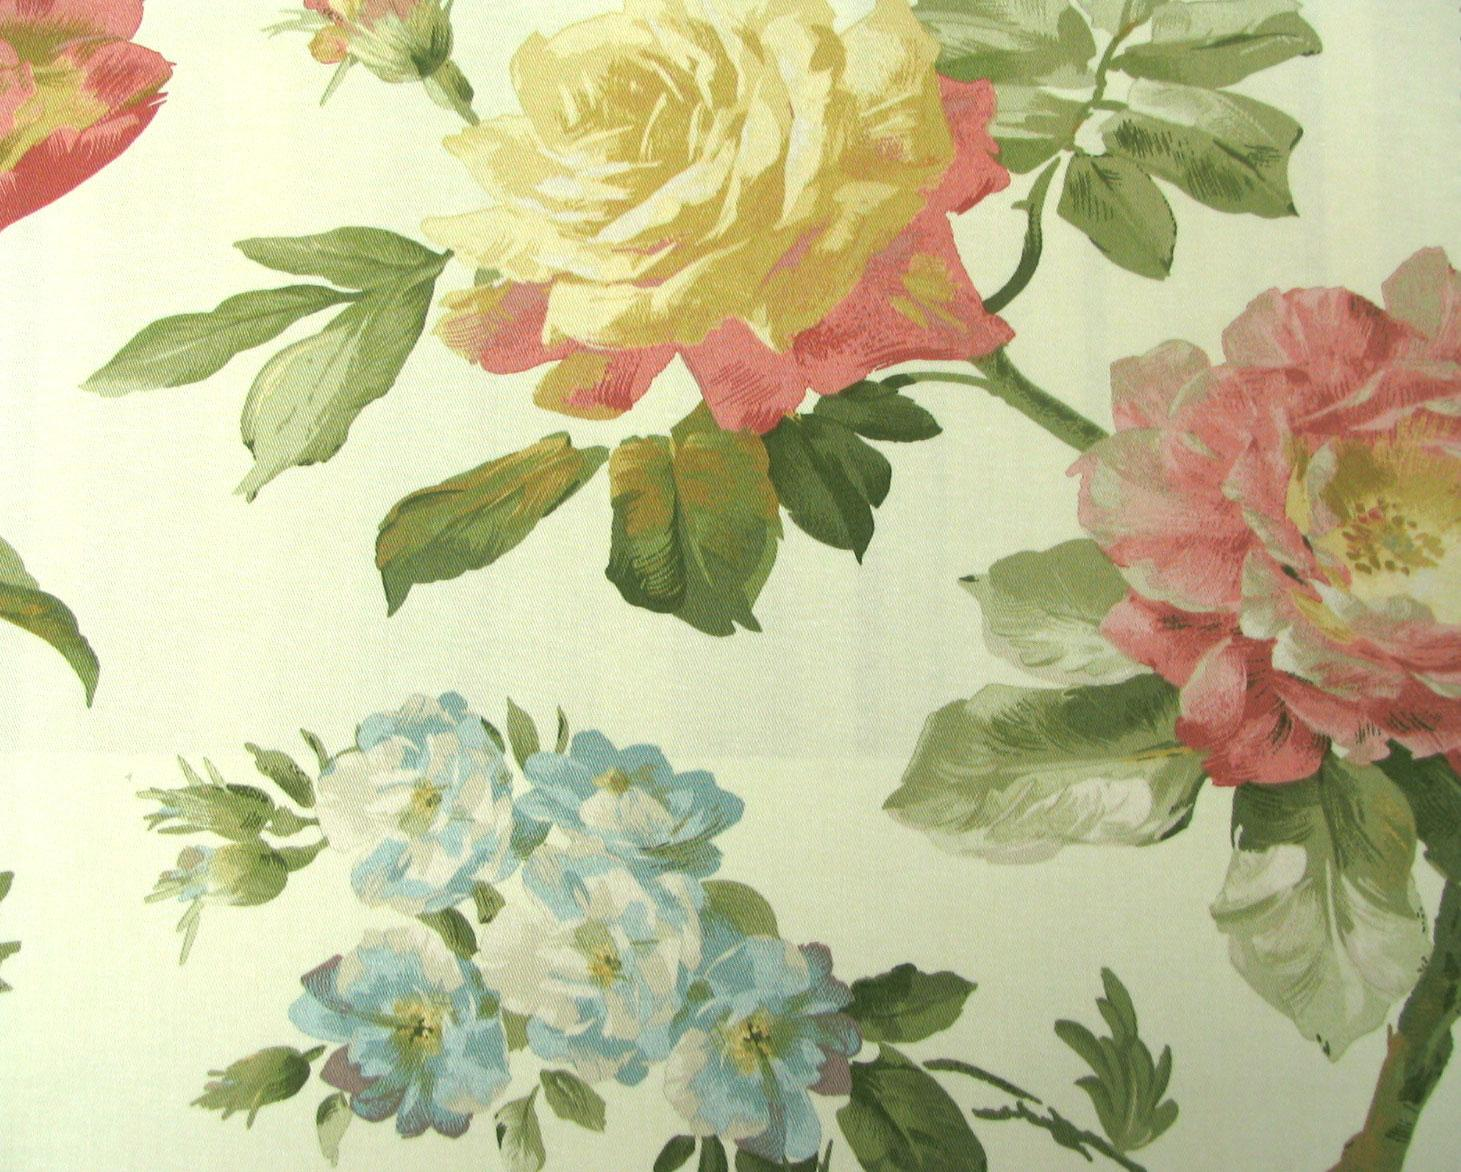 Waverly Fabrics Casa Di Fiori Cameo Interiordecoratingcom